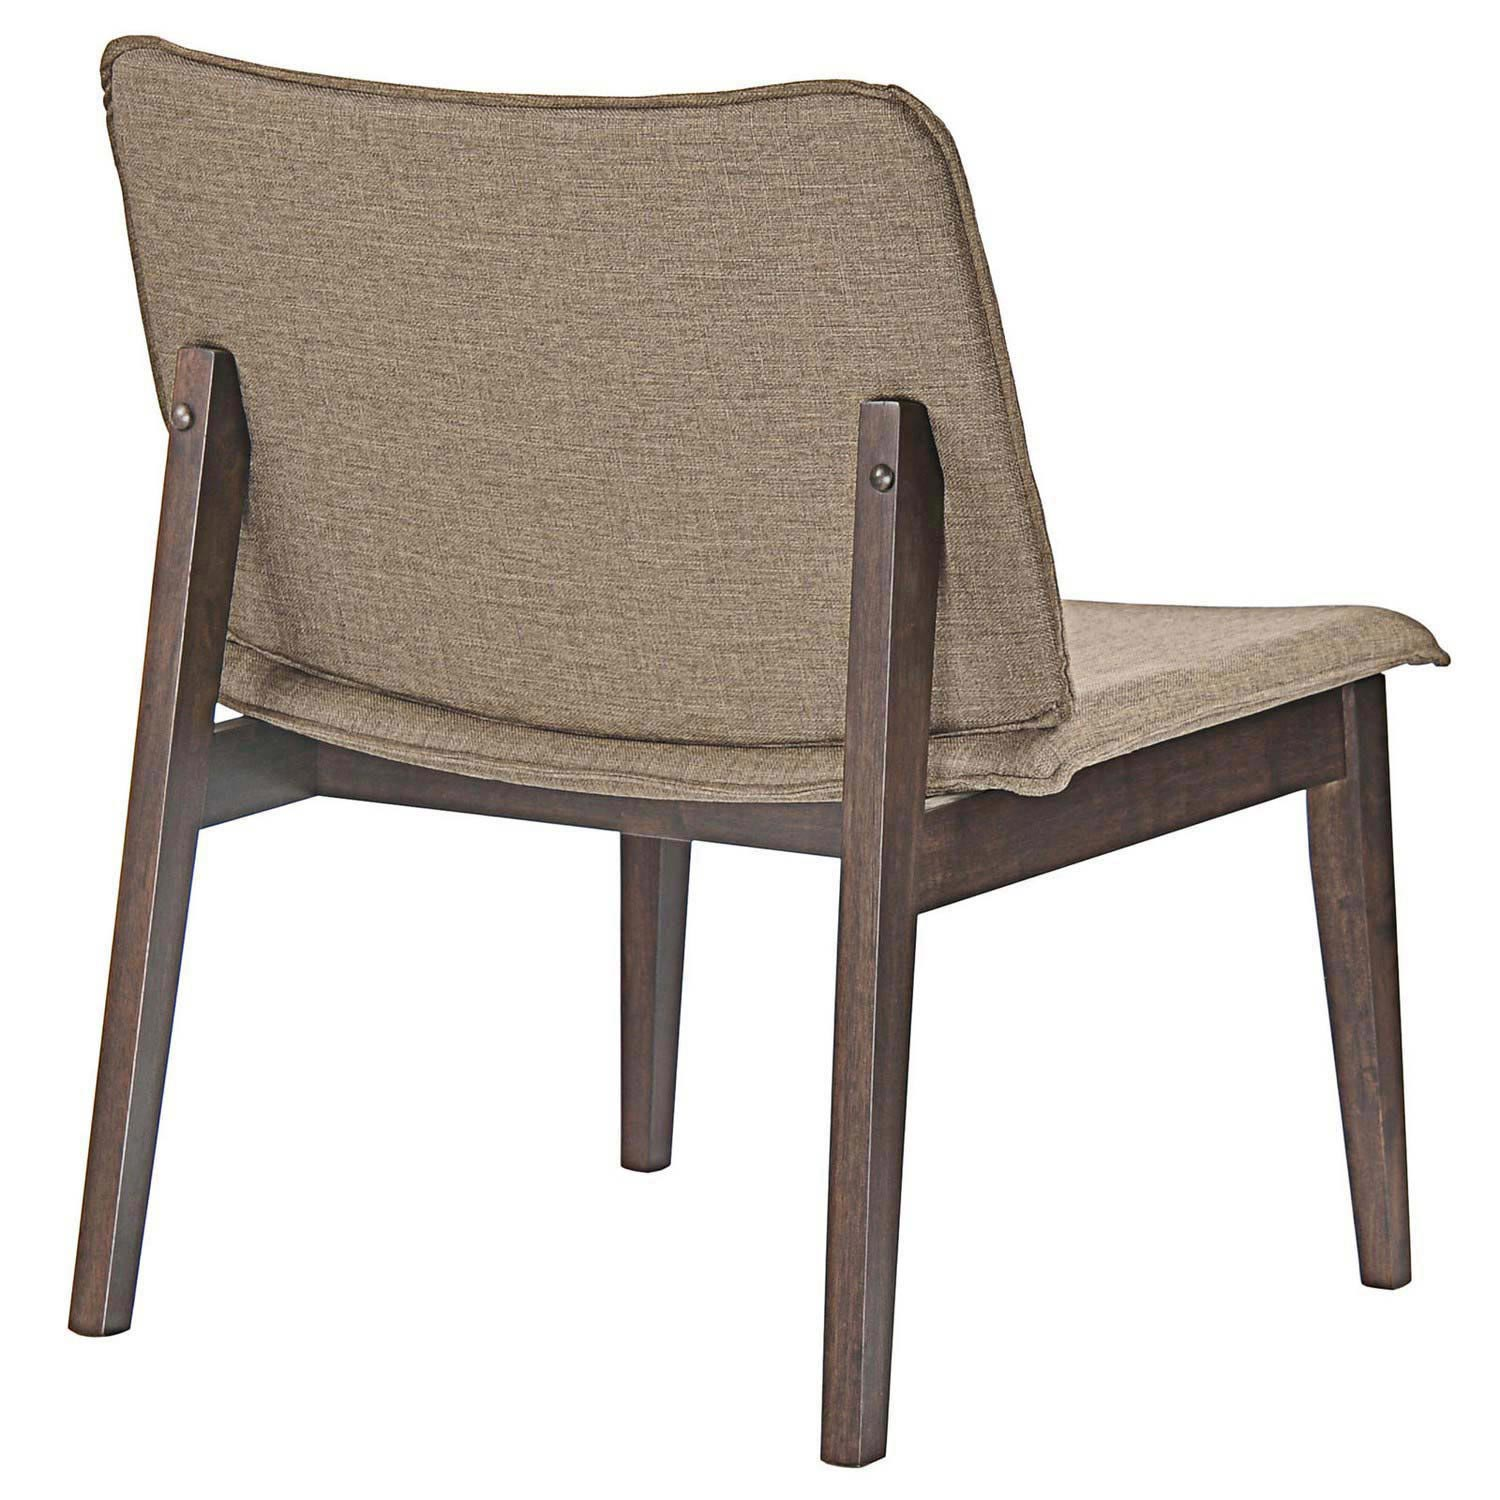 Modway Evade Lounge Chair - Walnut Latte